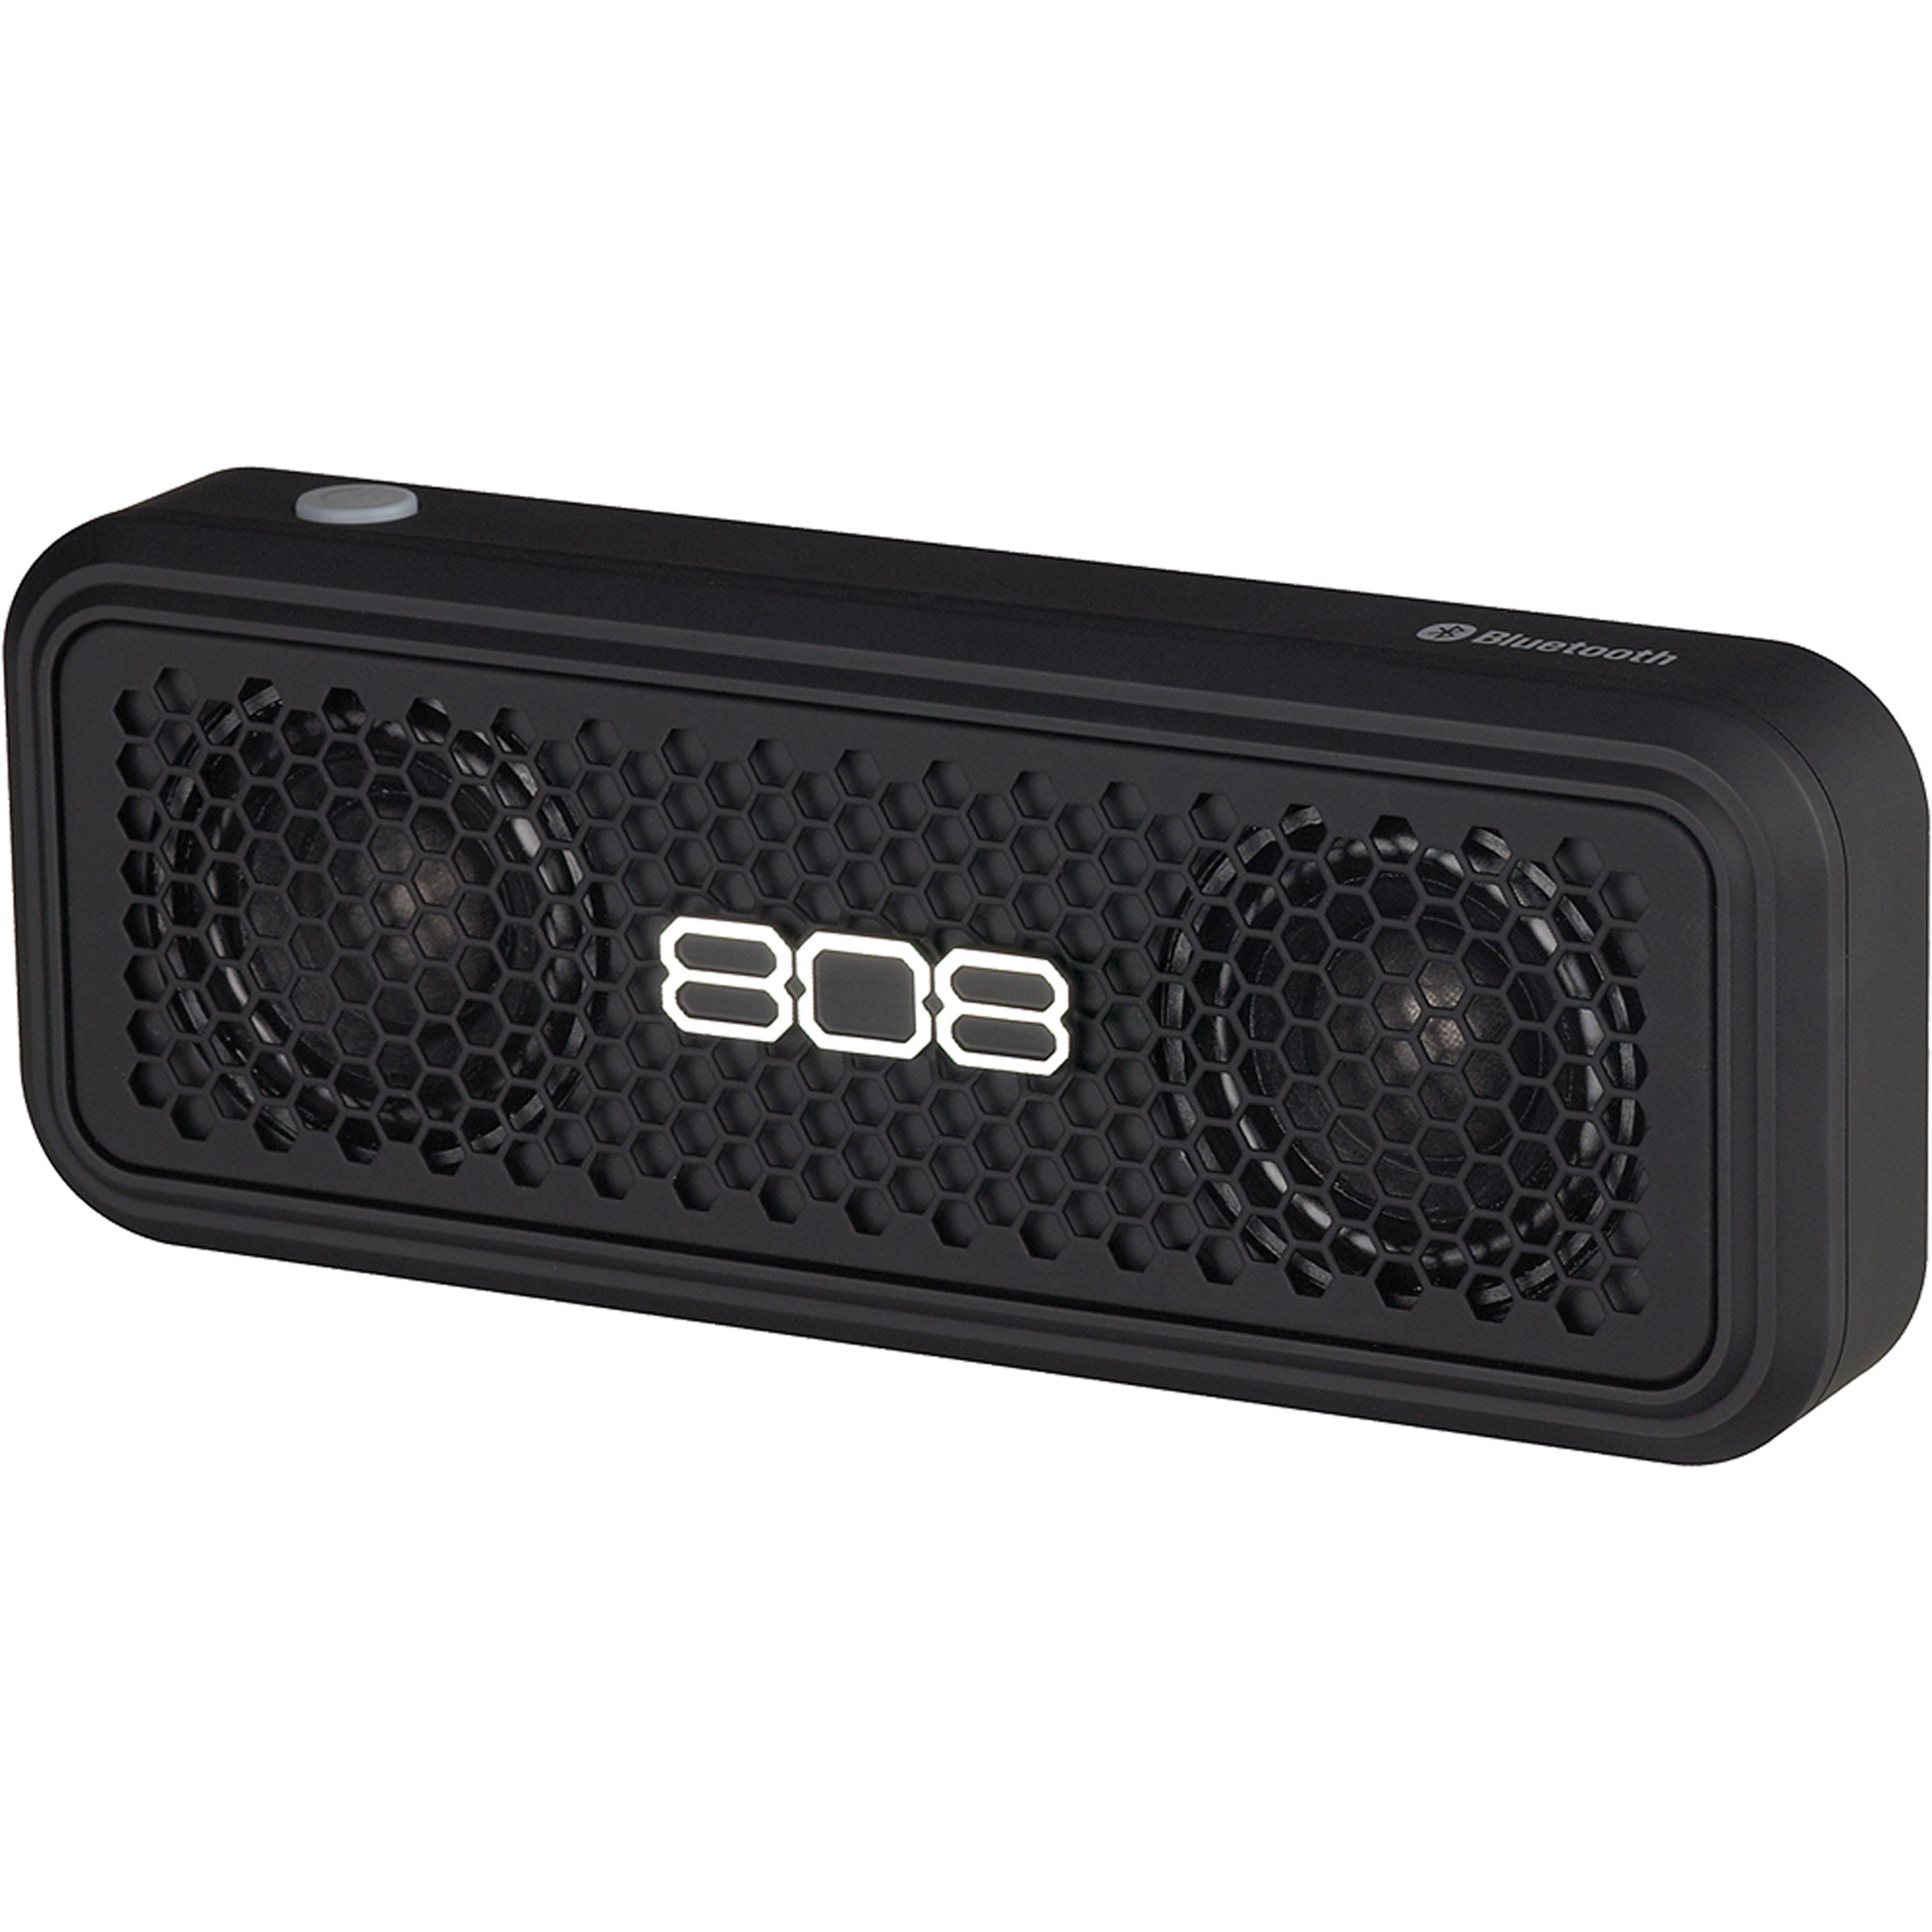 808 HEX XS Portable Bluetooth Speaker, Black